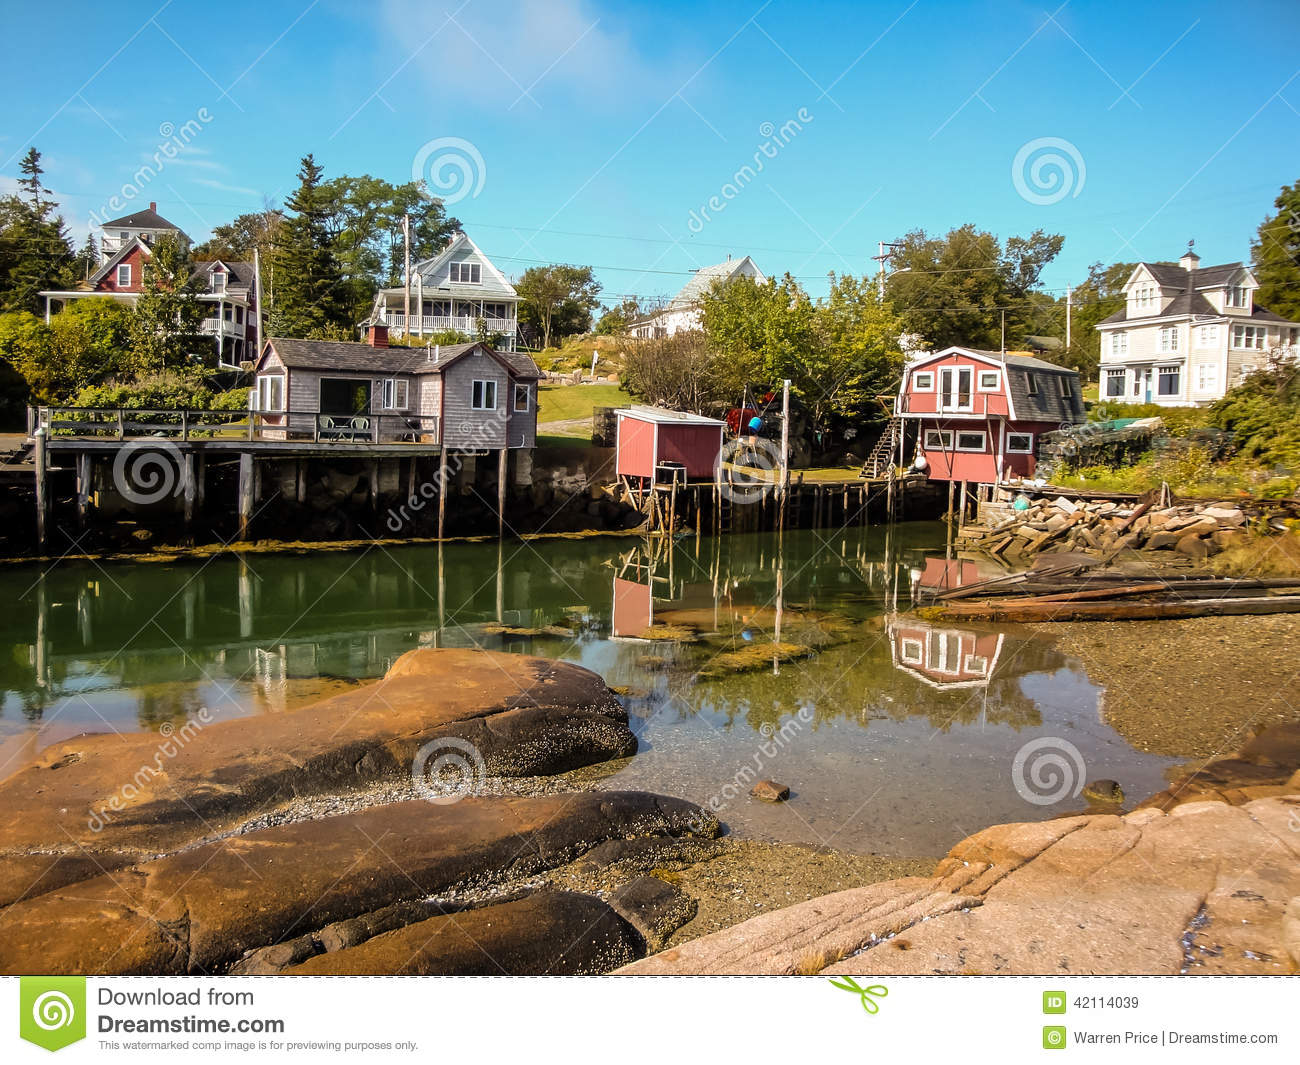 Waterfront cottages in fishing village stock image image for Ocean isles fishing village